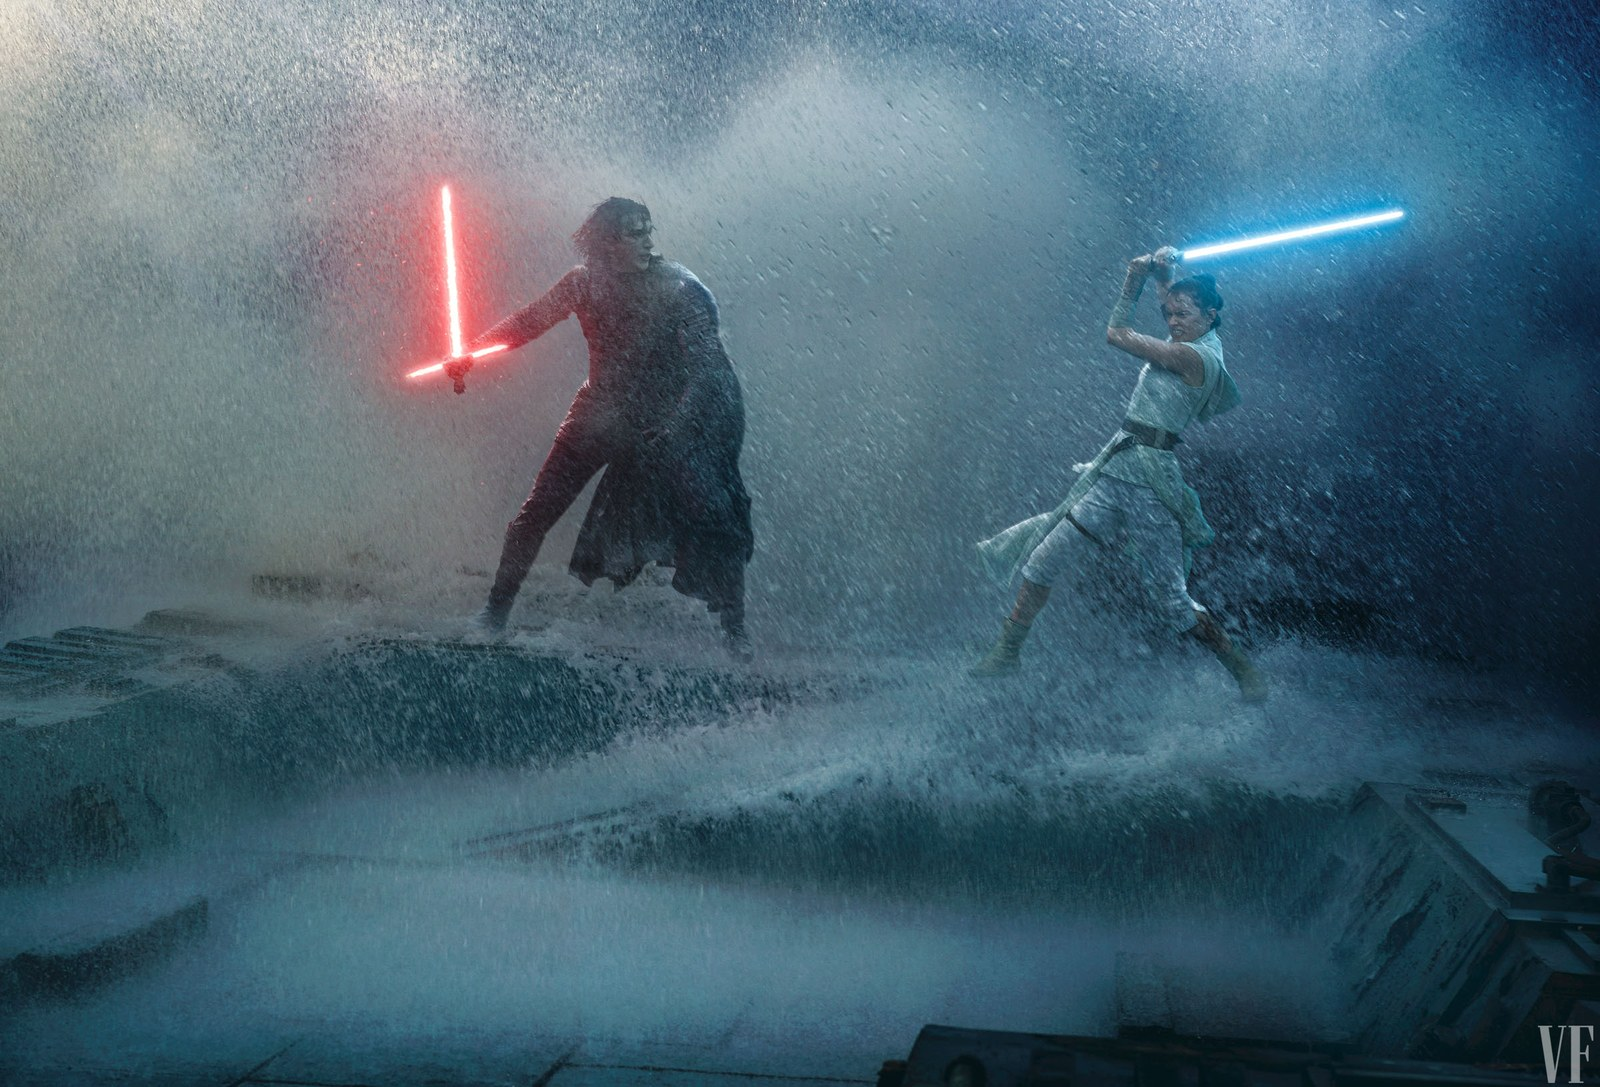 Vanity Fair exposes The Rise of Skywalker characters, details